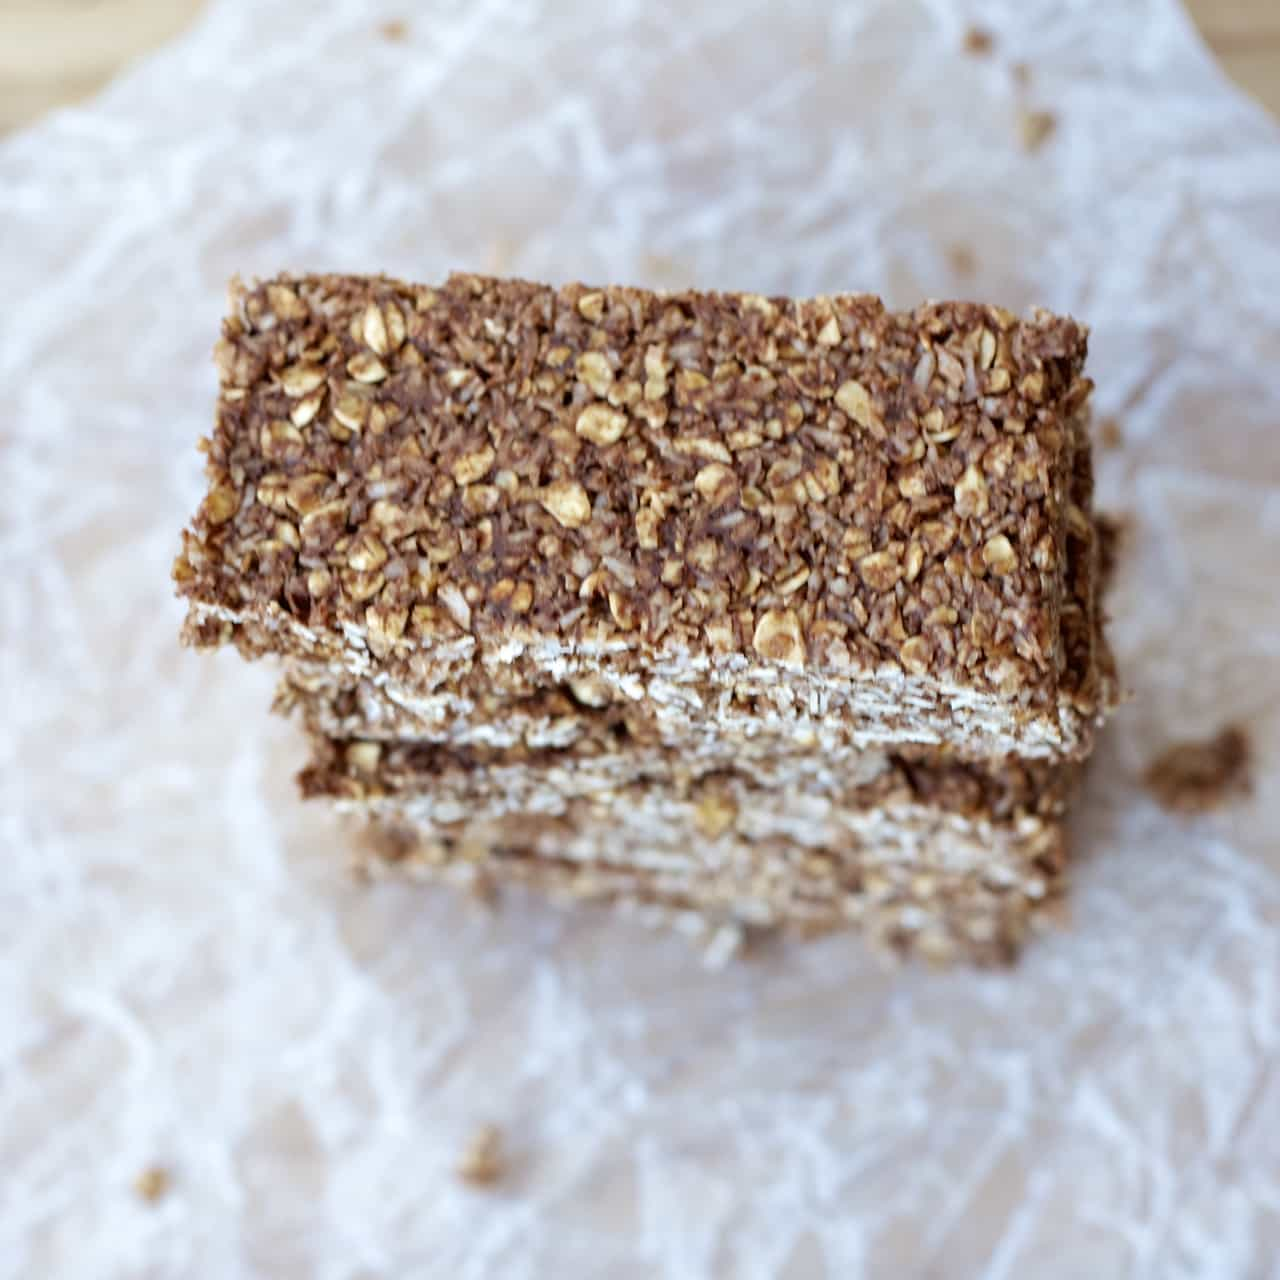 Image Result For How To Make Chocolate Granola With Coconut And Almonds